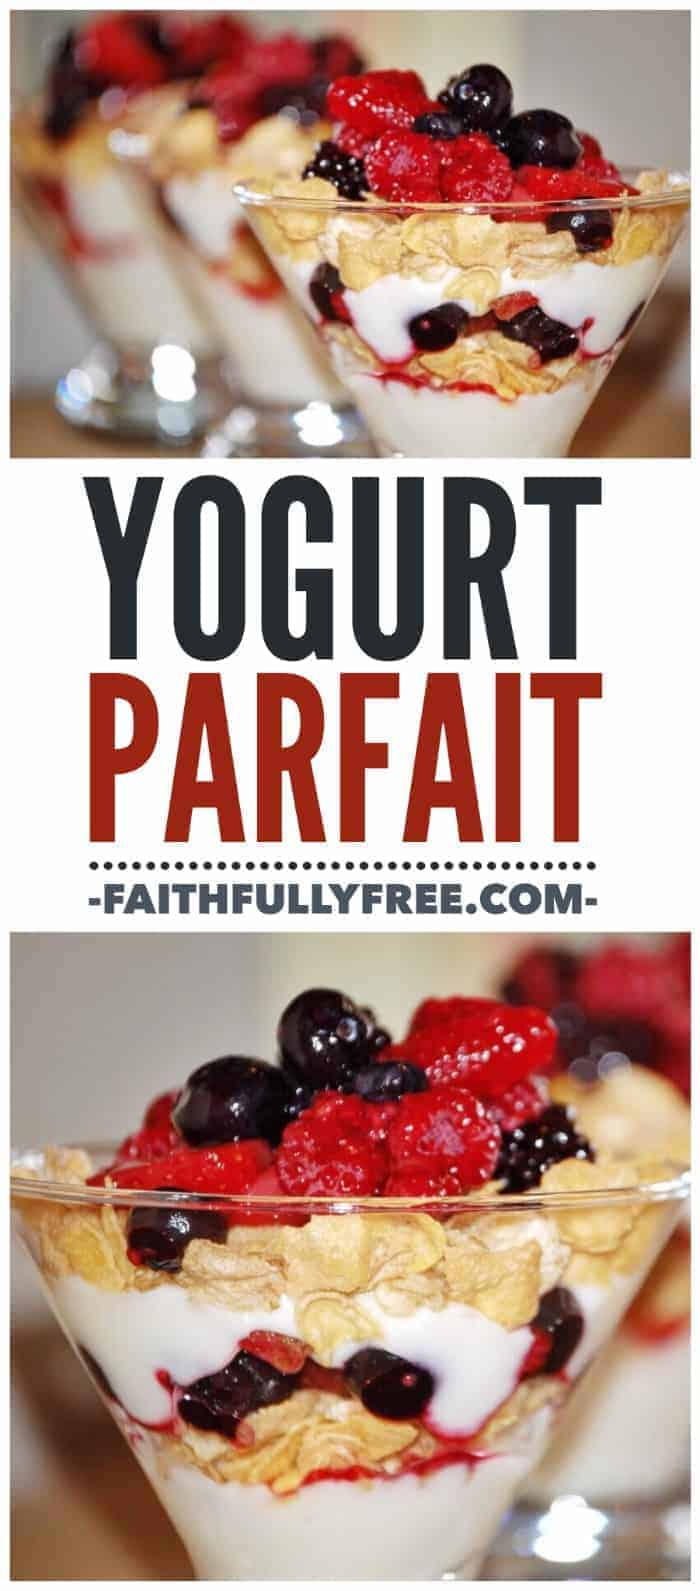 Yogurt Parfait Recipe